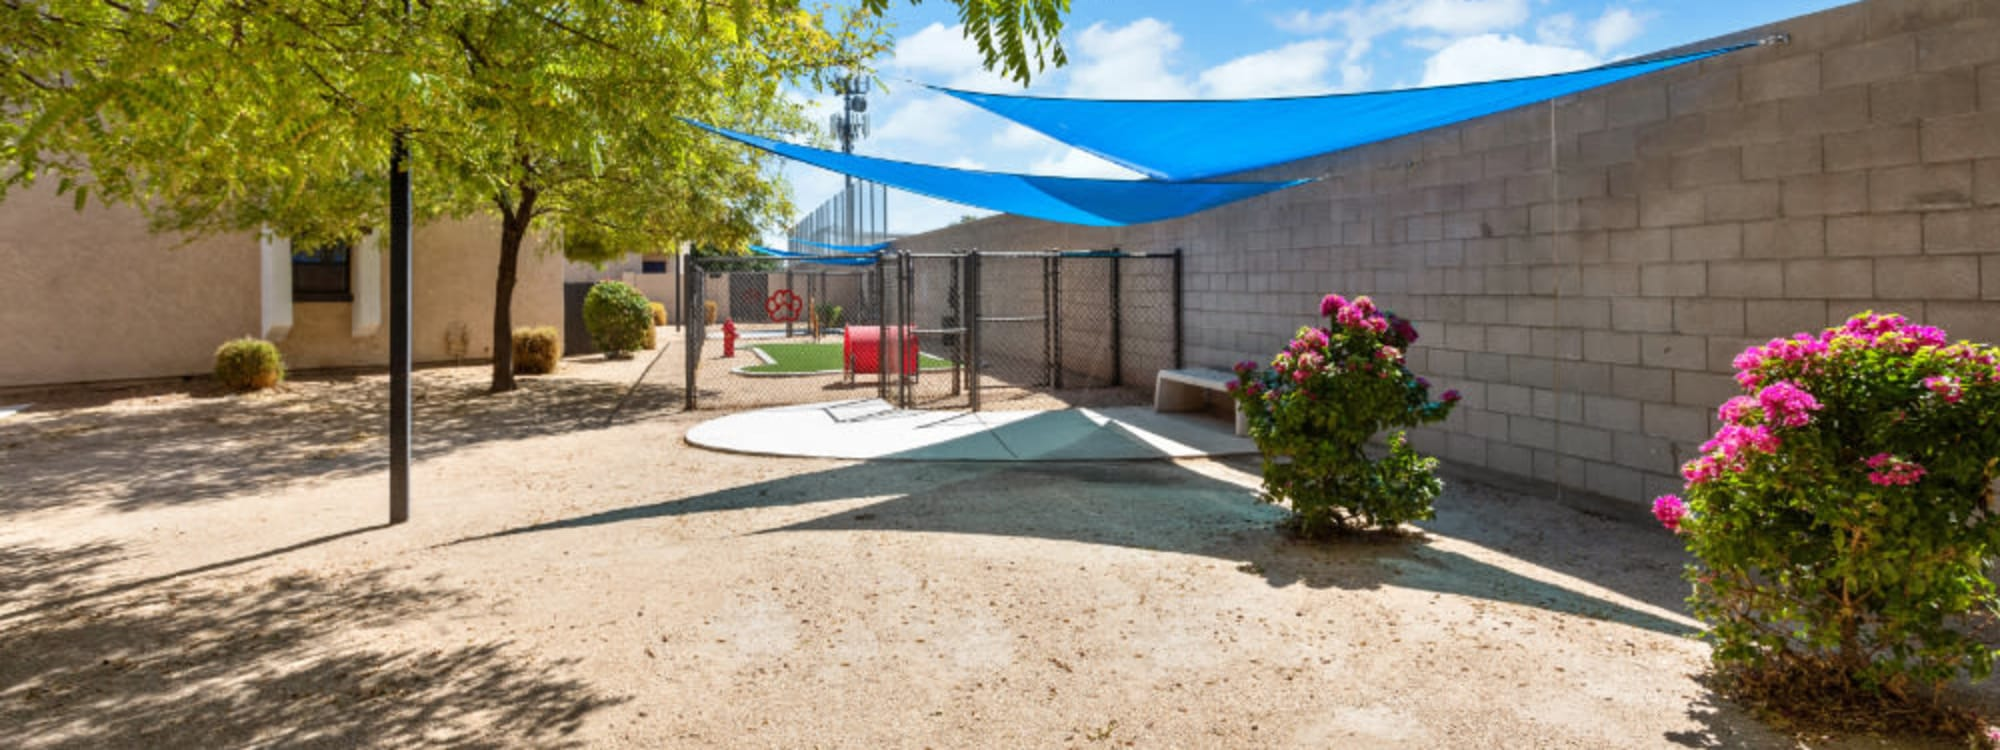 1408 Casitas at Palm Valley's pet policy in Avondale, Arizona